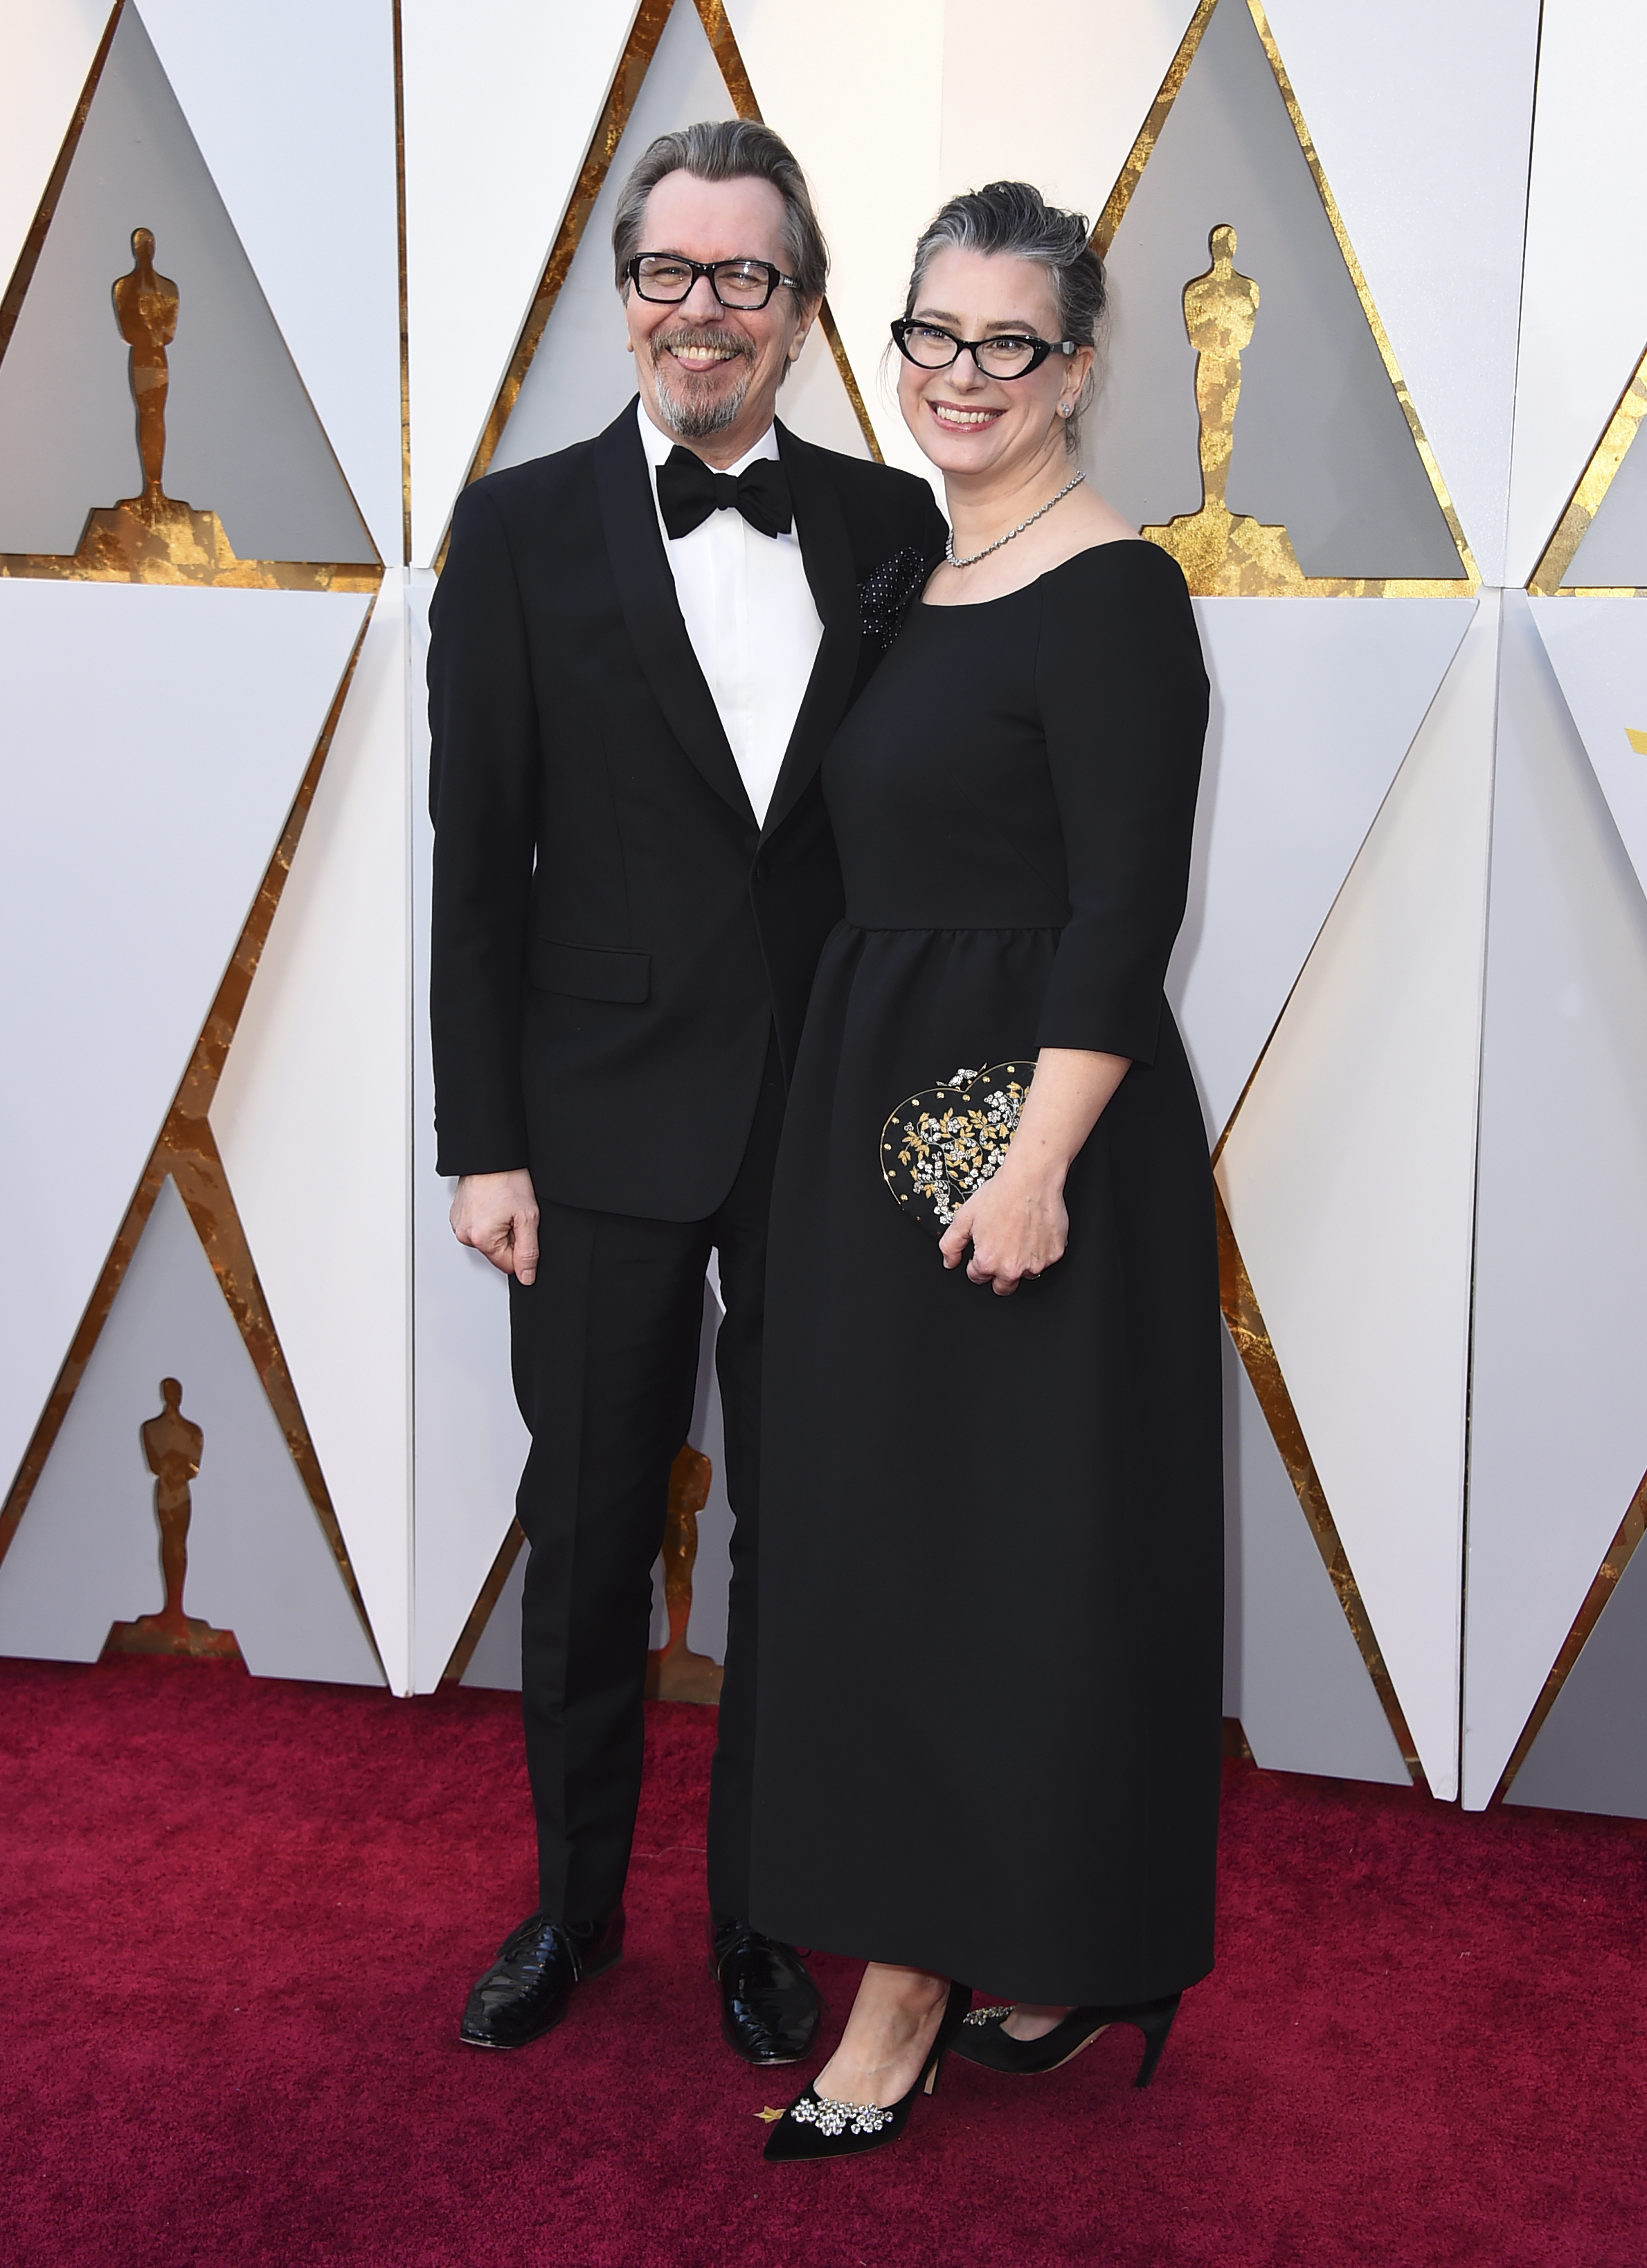 <div class='meta'><div class='origin-logo' data-origin='none'></div><span class='caption-text' data-credit='Jordan Strauss/Invision/AP'>Gary Oldman (nominated for Best Actor for ''Darkest Hour'') and Gisele Schmidt arrive at the Oscars.</span></div>